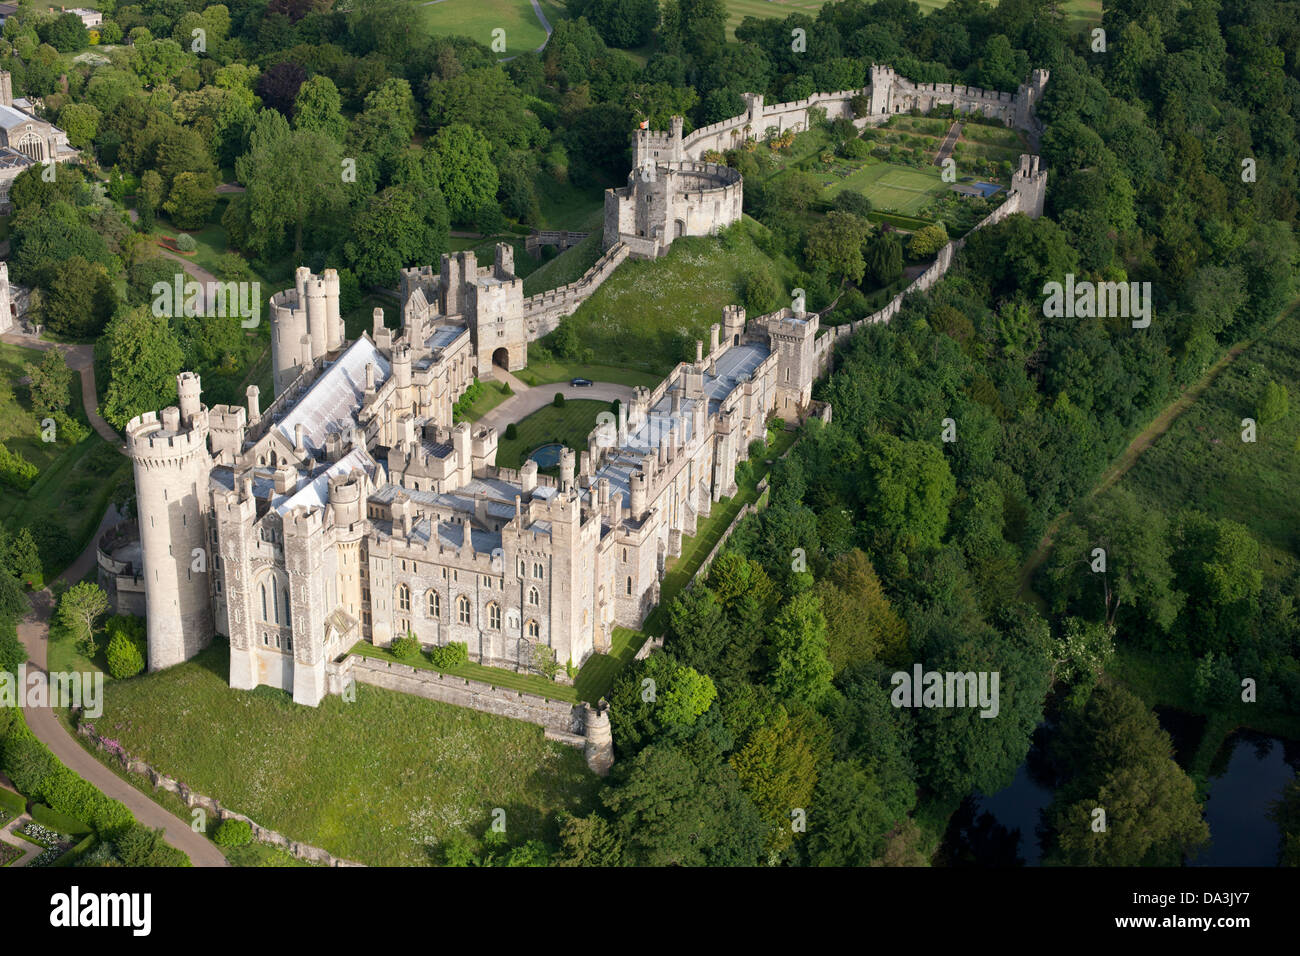 ARUNDEL CASTLE (aerial view). Medieval castle in Arundel, West Sussex, England, Great Britain, United Kingdom. Stock Photo